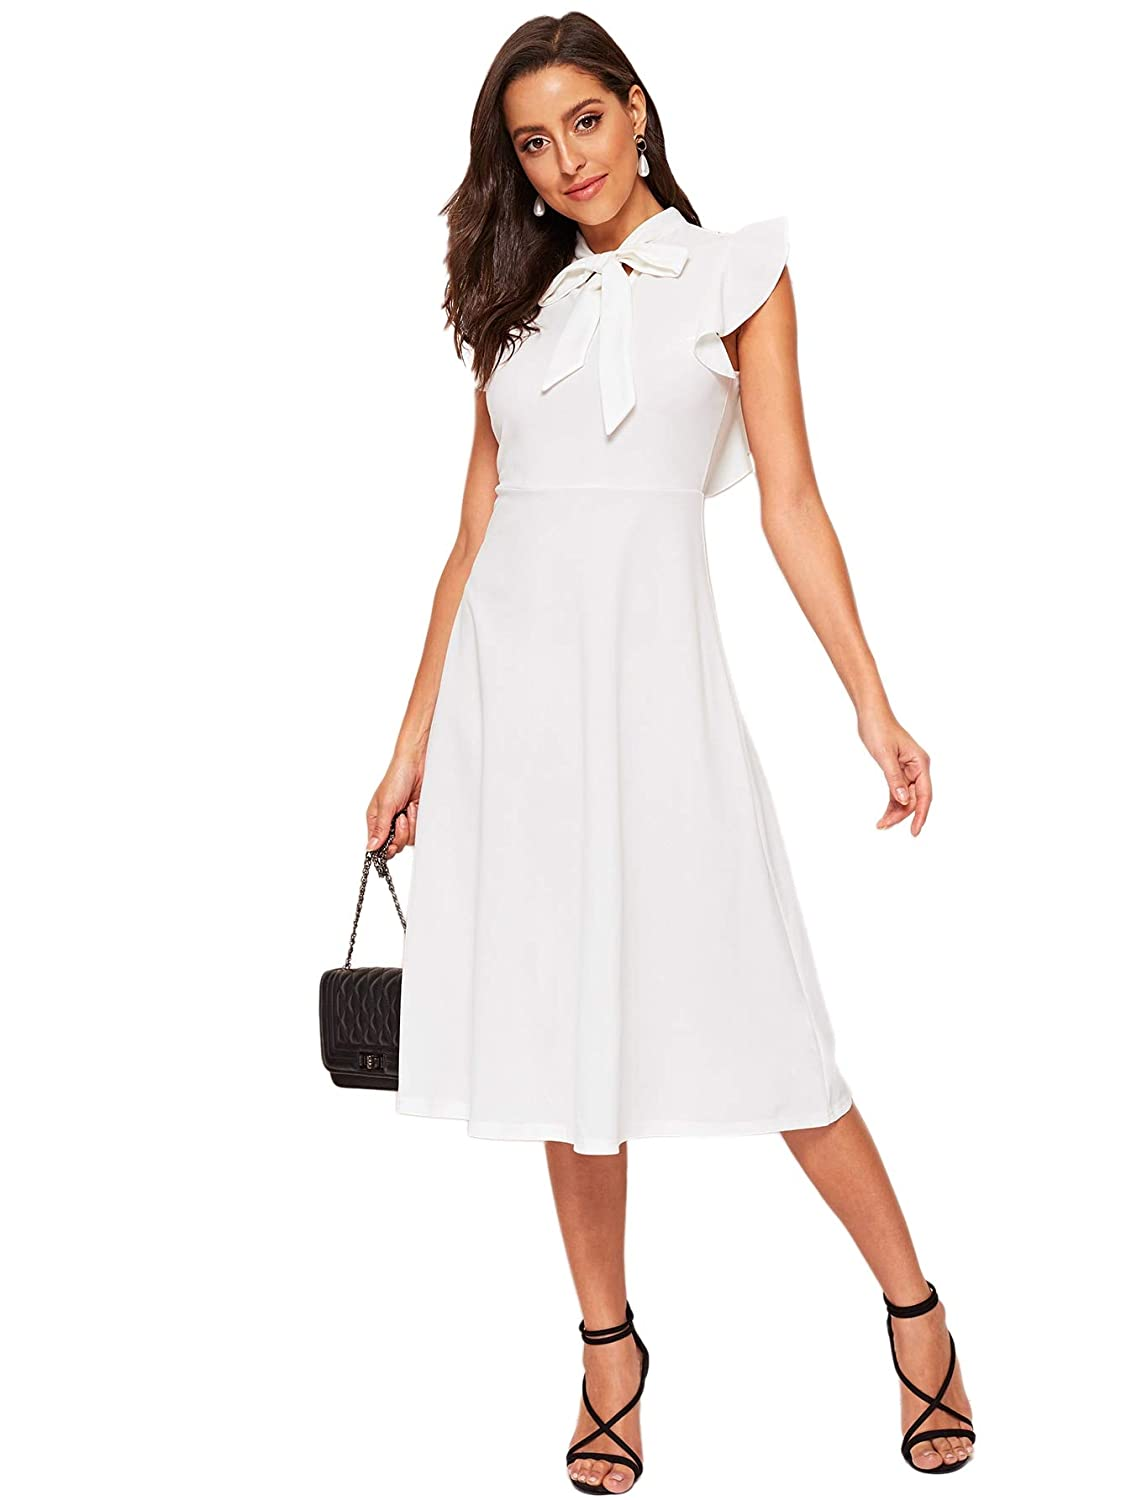 Old Fashioned Dresses | Old Dress Styles Verdusa Womens Elegant Ruffle Trim Tie Neck Flutter Sleeve A-Line Dress $23.99 AT vintagedancer.com